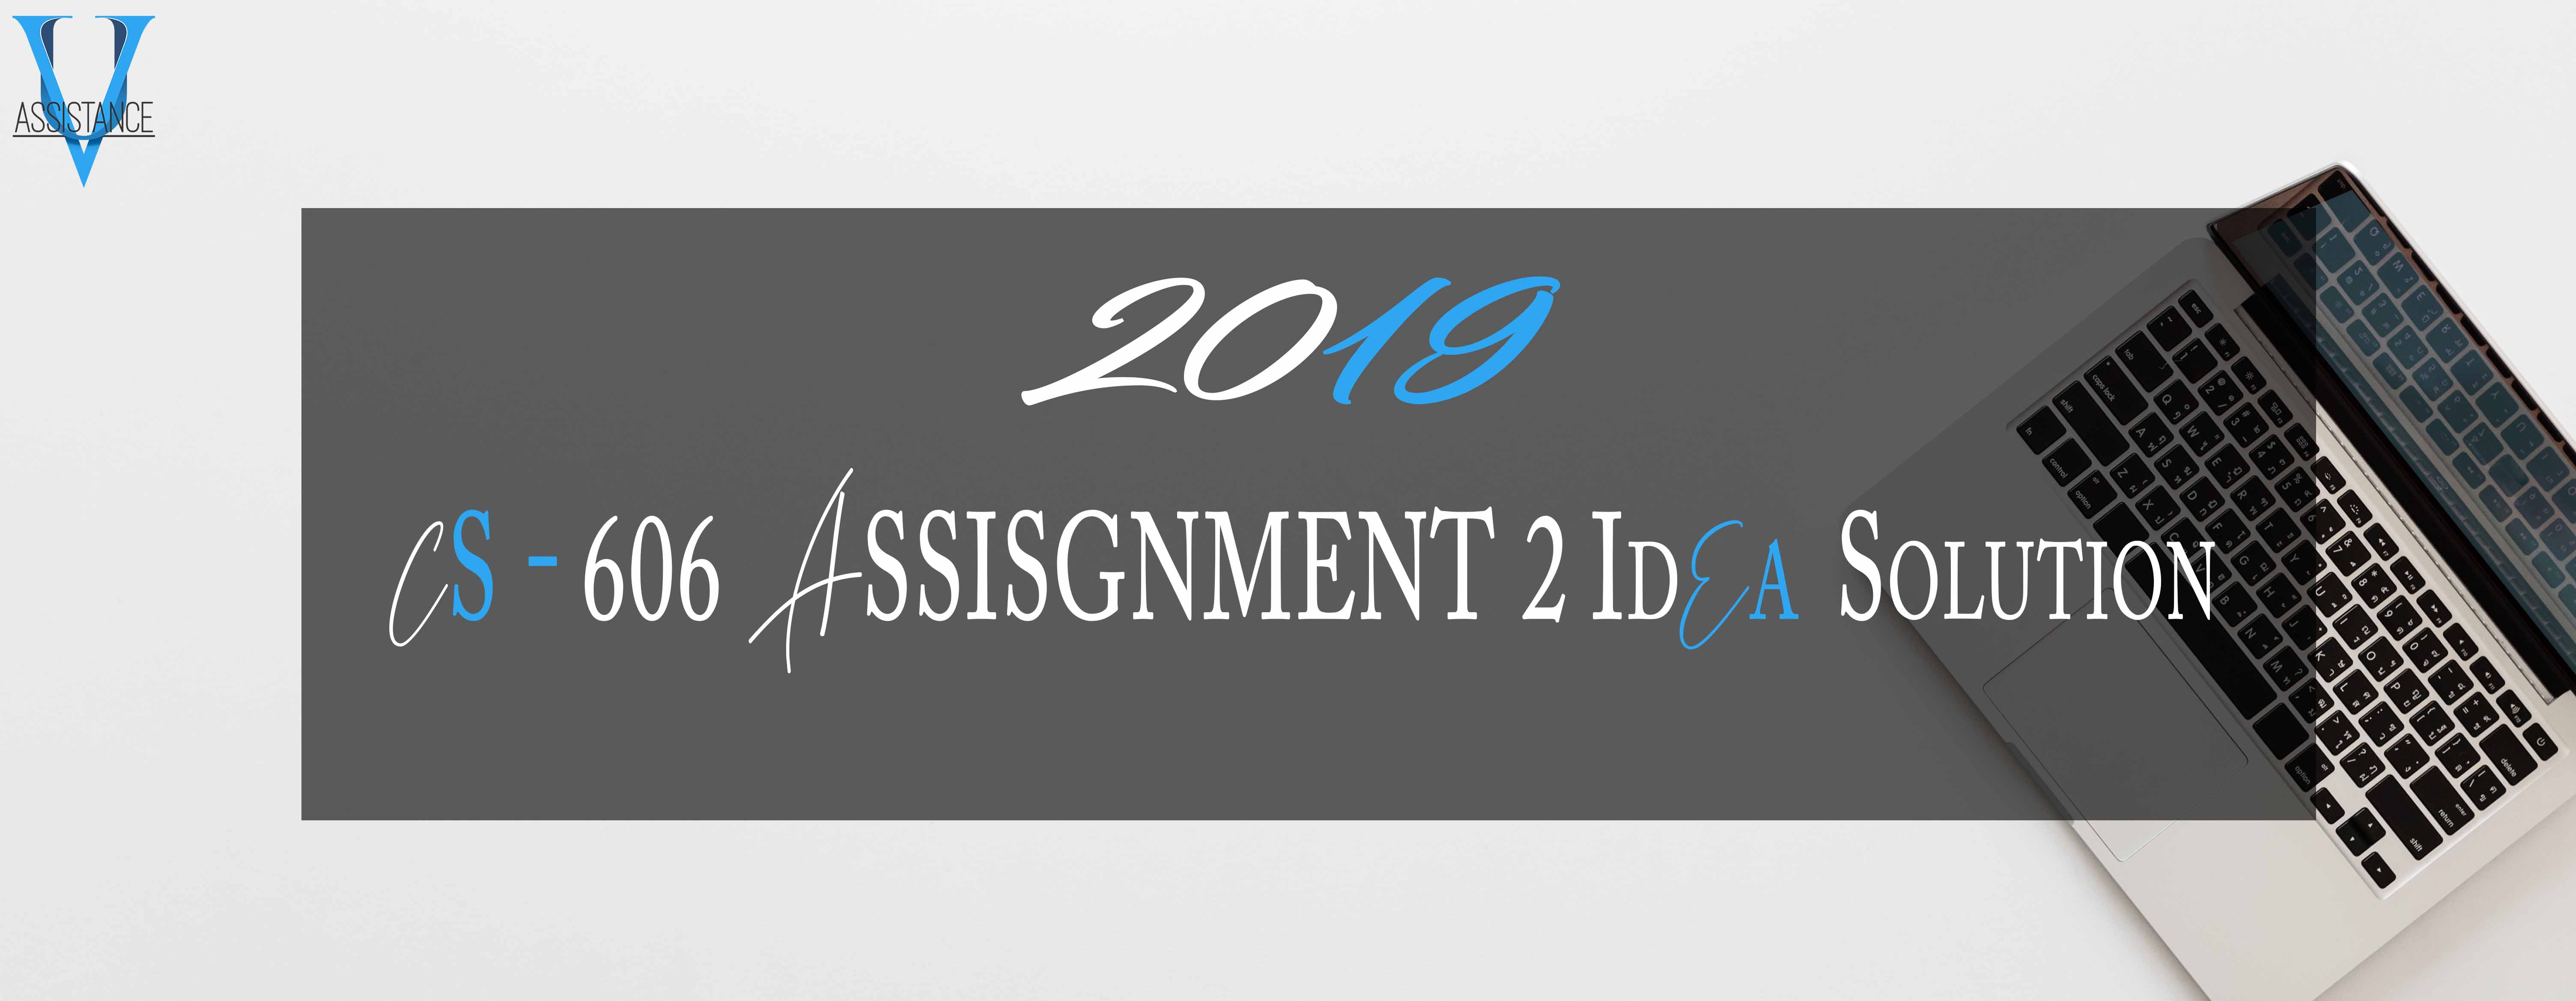 Cs606 Assisgnment 2 idea solution 2019